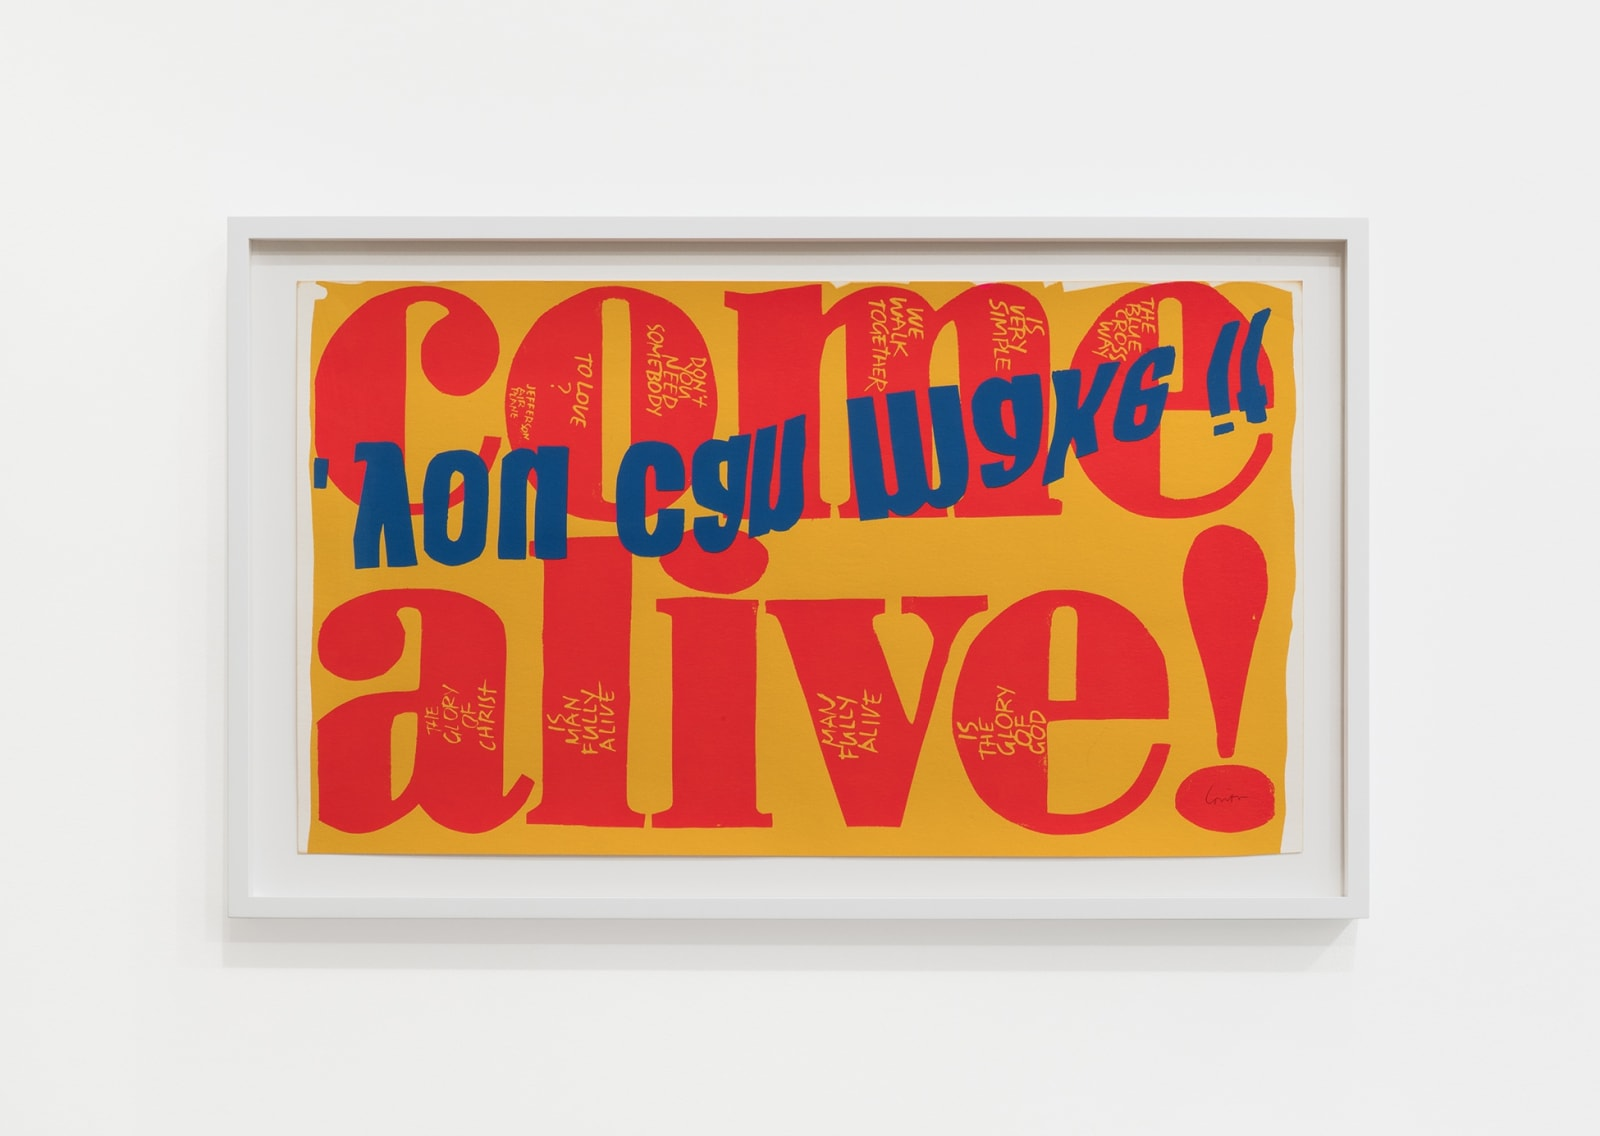 Corita Kent come alive, 1967 Screenprint 13 x 23 in (33 x 58.4 cm) $5,000.00